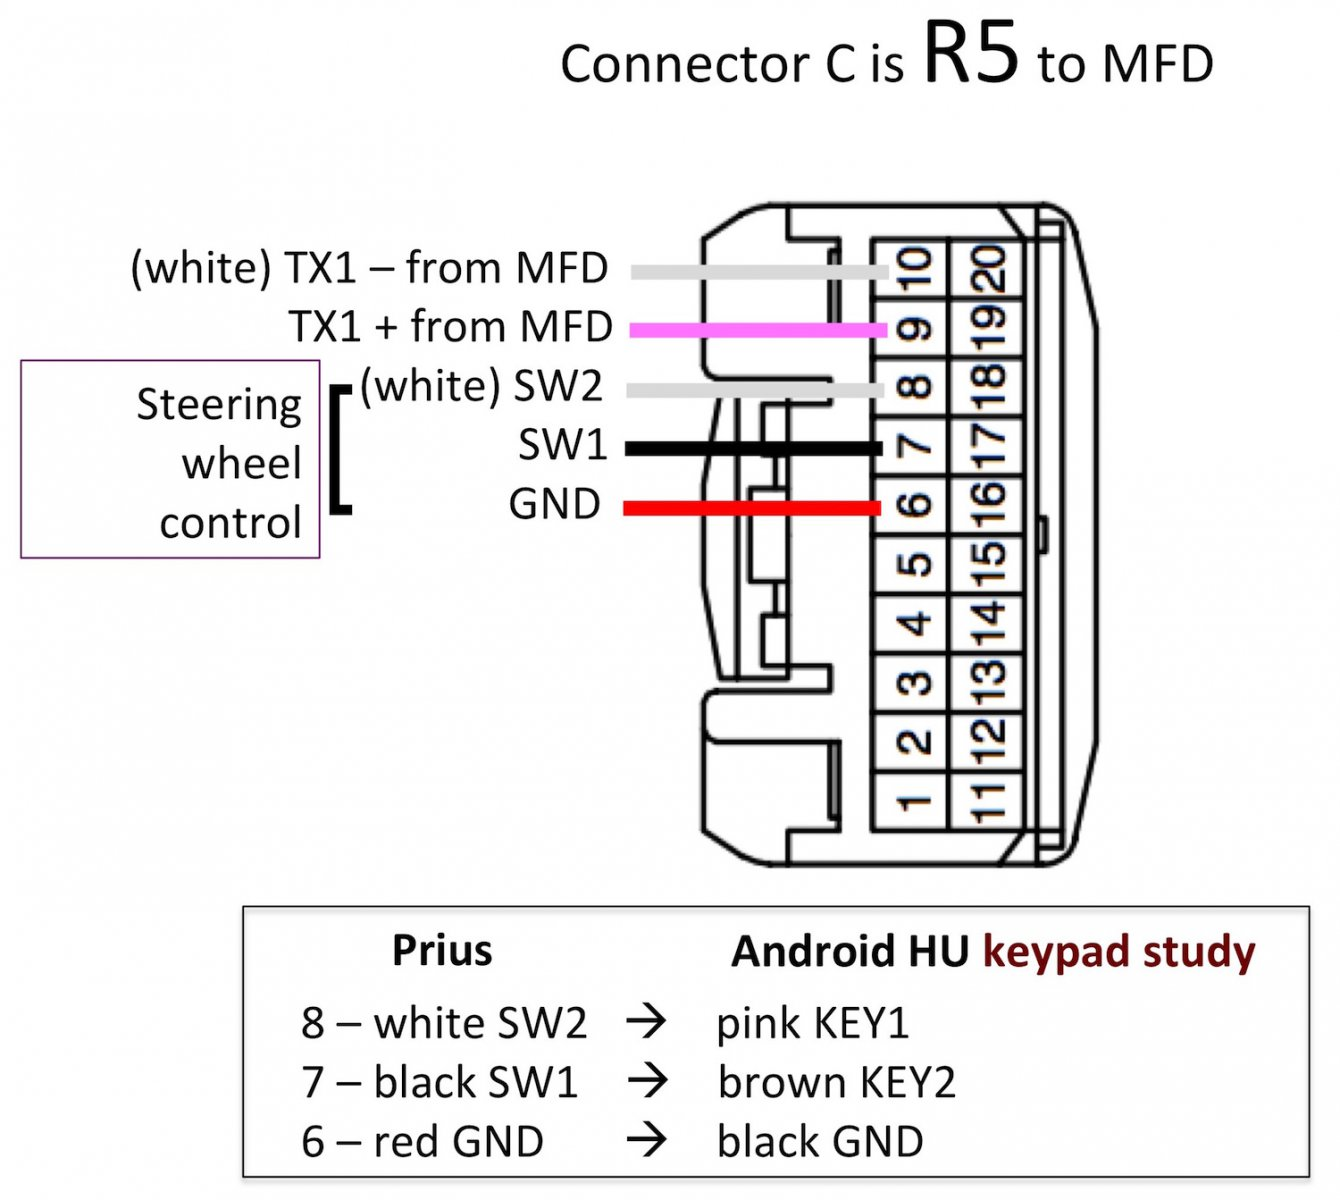 Steering Wheel Control With Android Hu Without Metra Aswc Interface on hyundai elantra fuse box diagram